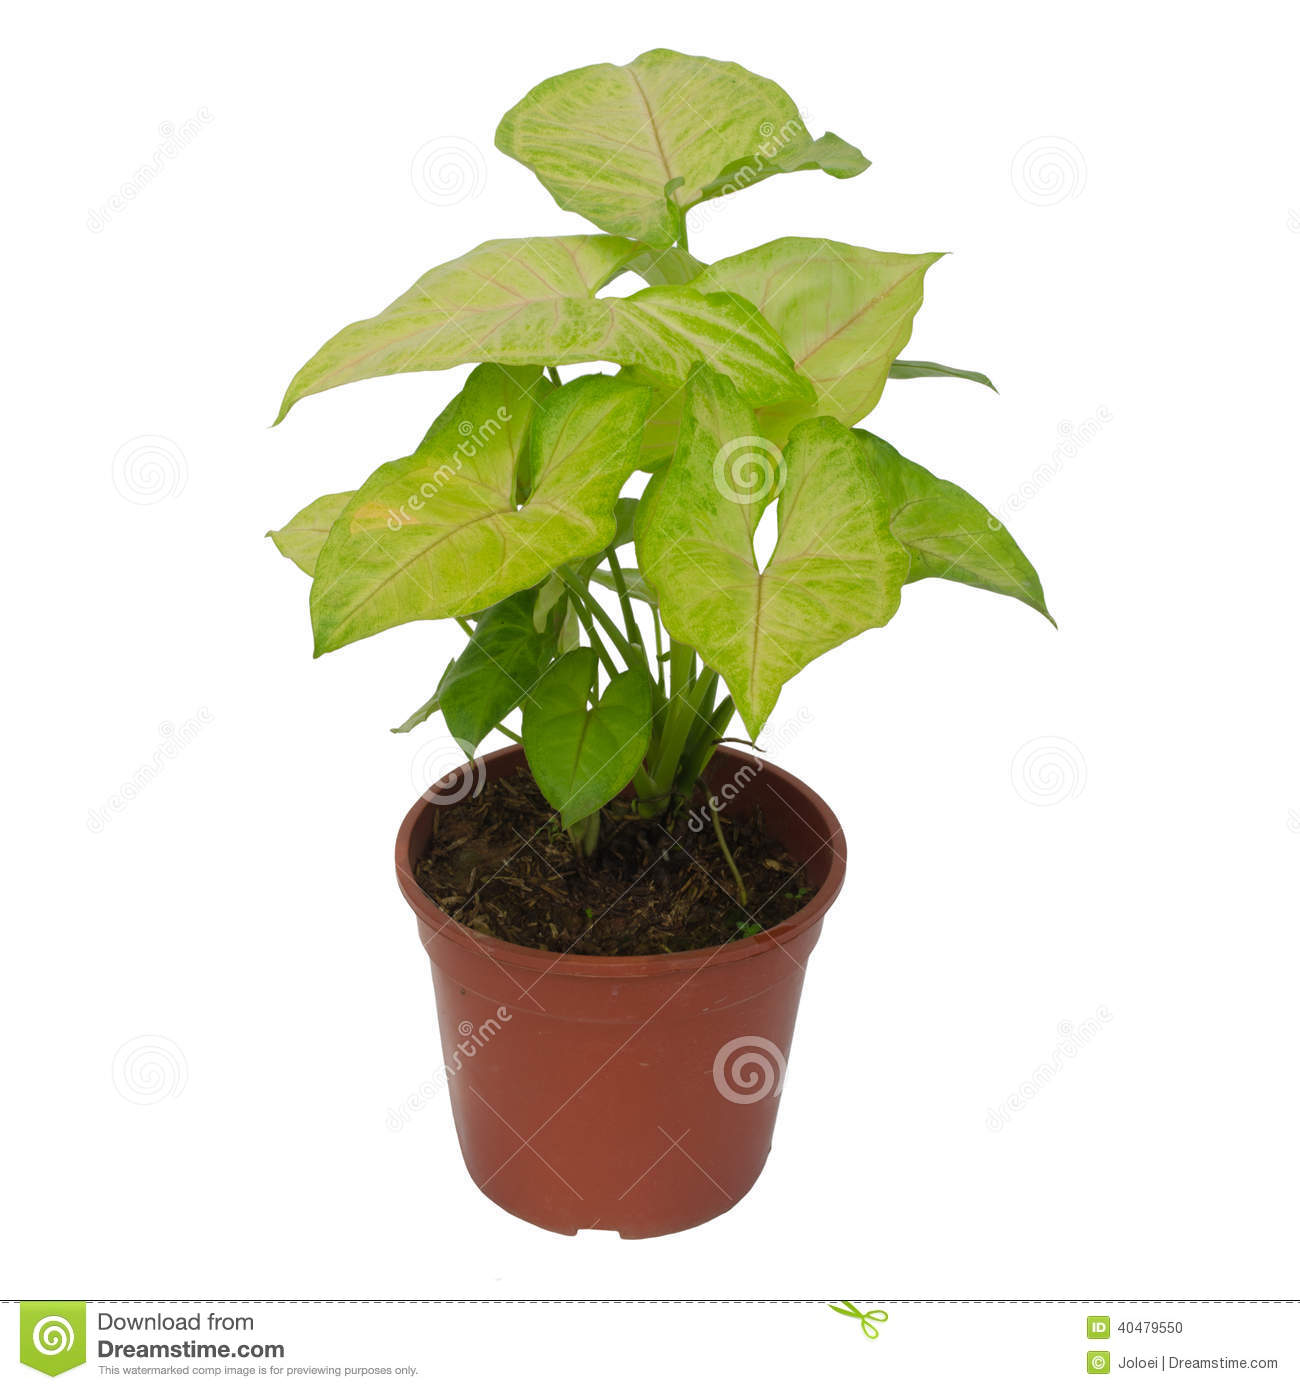 Syngonium de plante d 39 int rieur photo stock image 40479550 - Moucherons plante d interieur ...